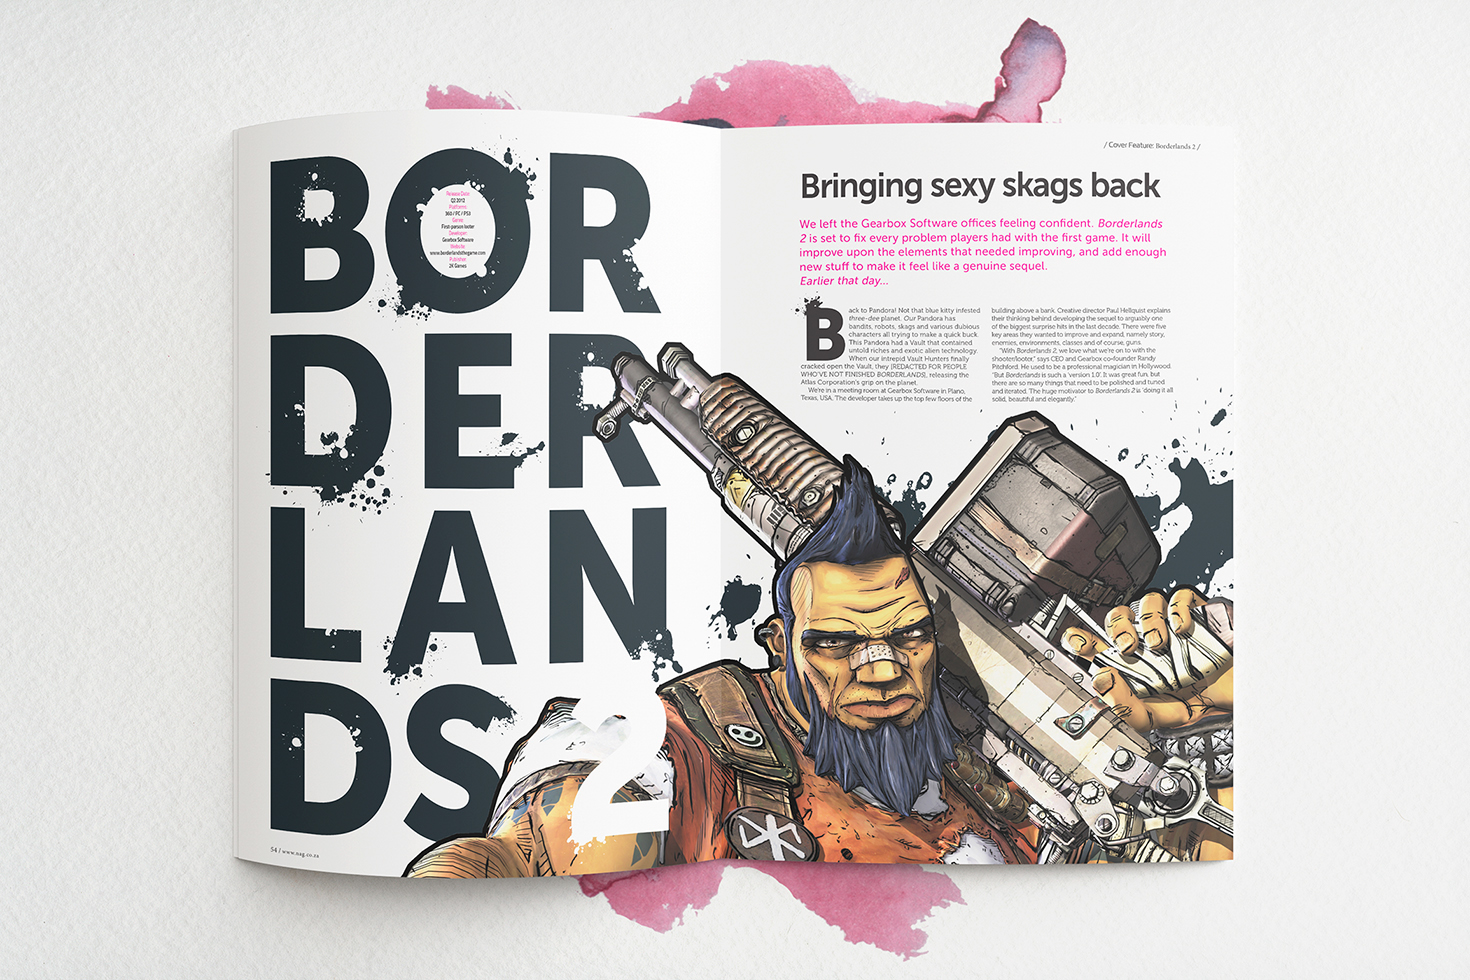 Borderlands 2 Feature / NAG Magazine on Behance